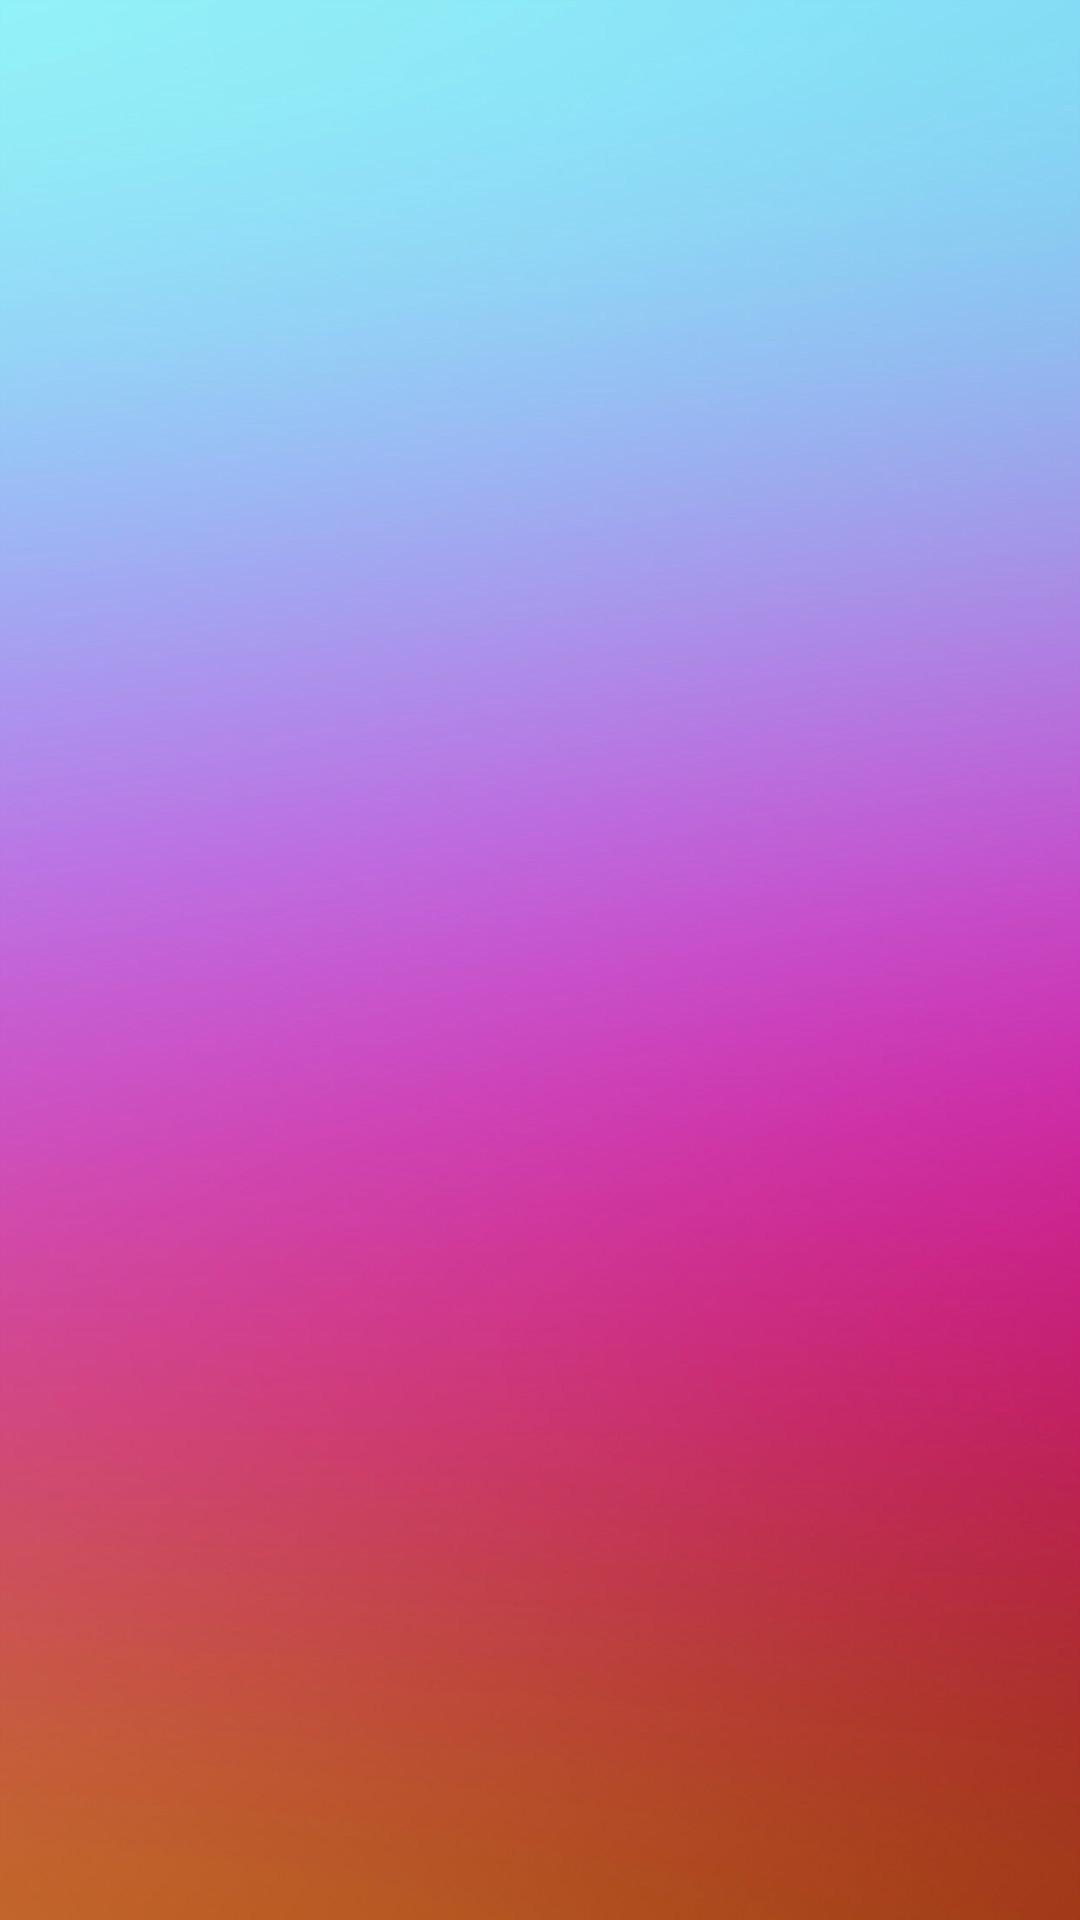 Res: 1080x1920, Blue And Red Color Gradation Blur iPhone 6 wallpaper